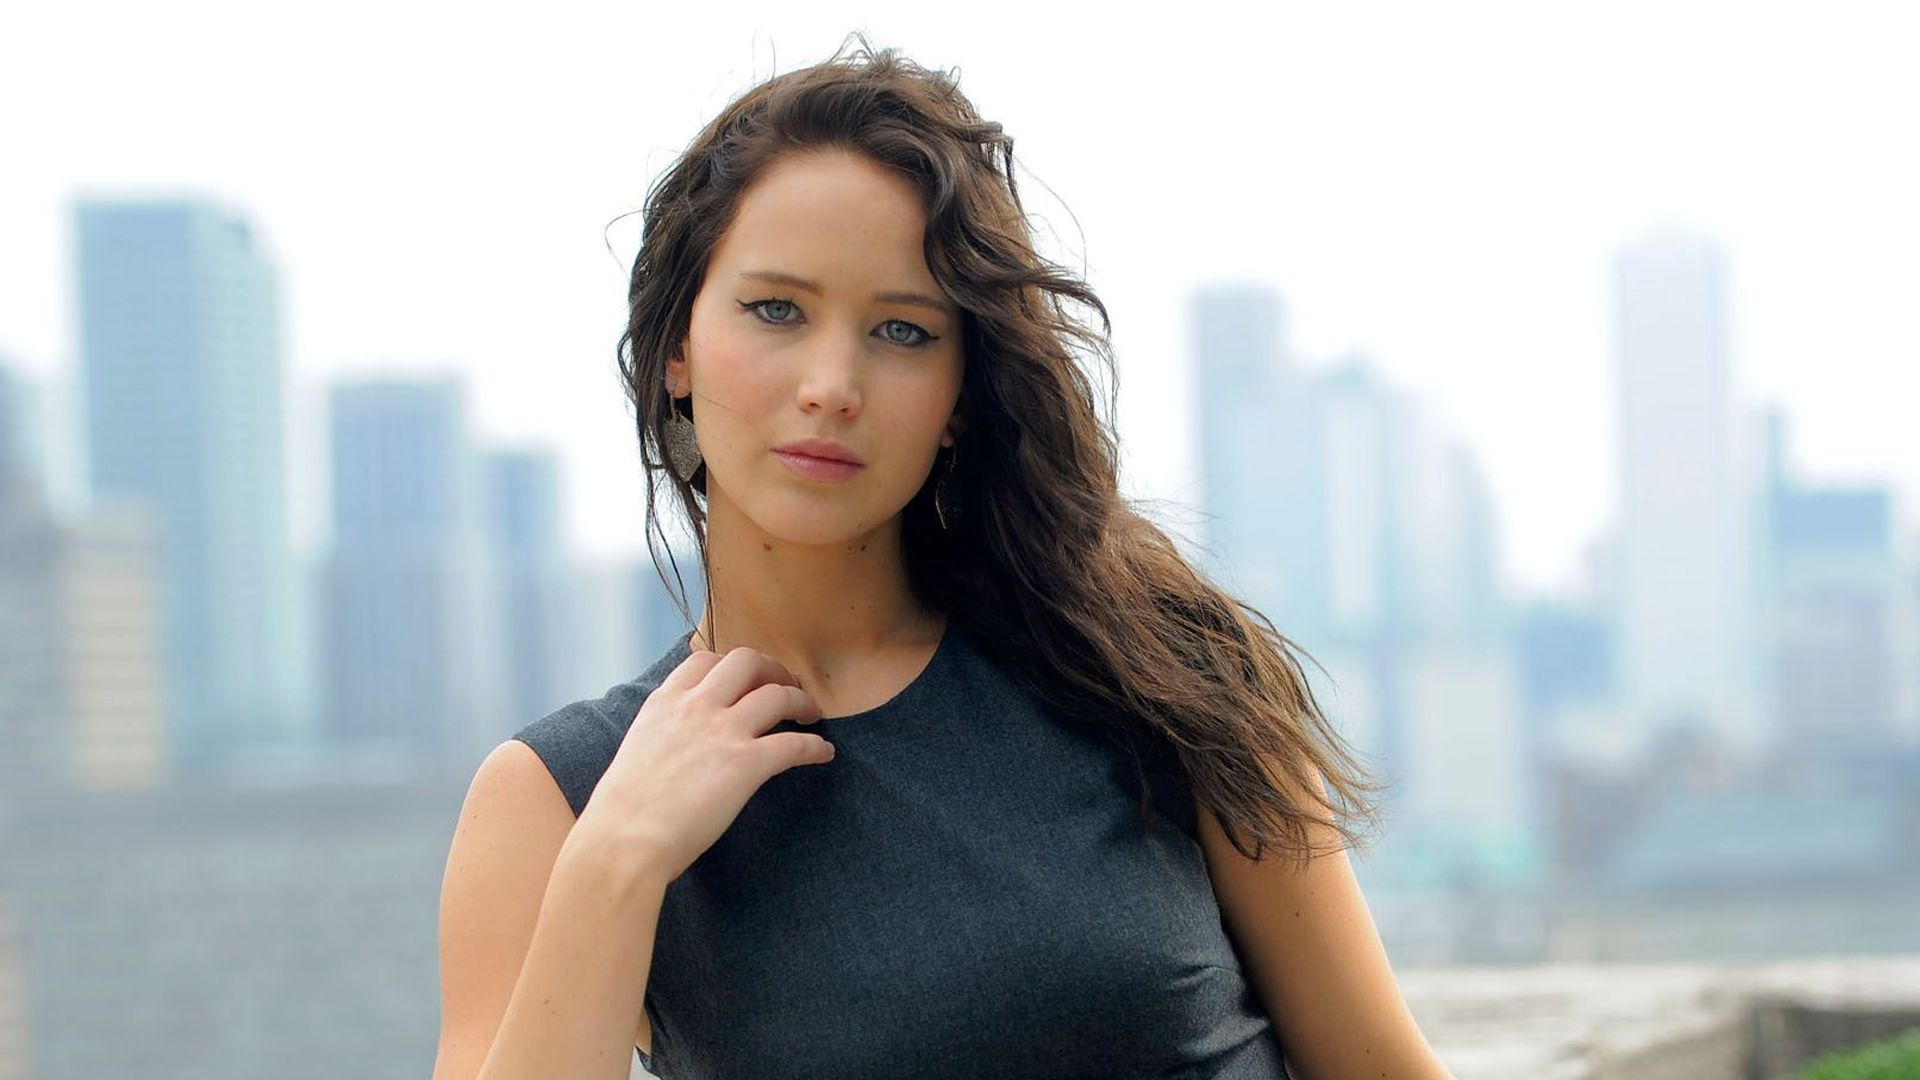 Jennifer lawrence actress photos httpatozpictures best pic hd jennifer lawrence in high quality voltagebd Gallery